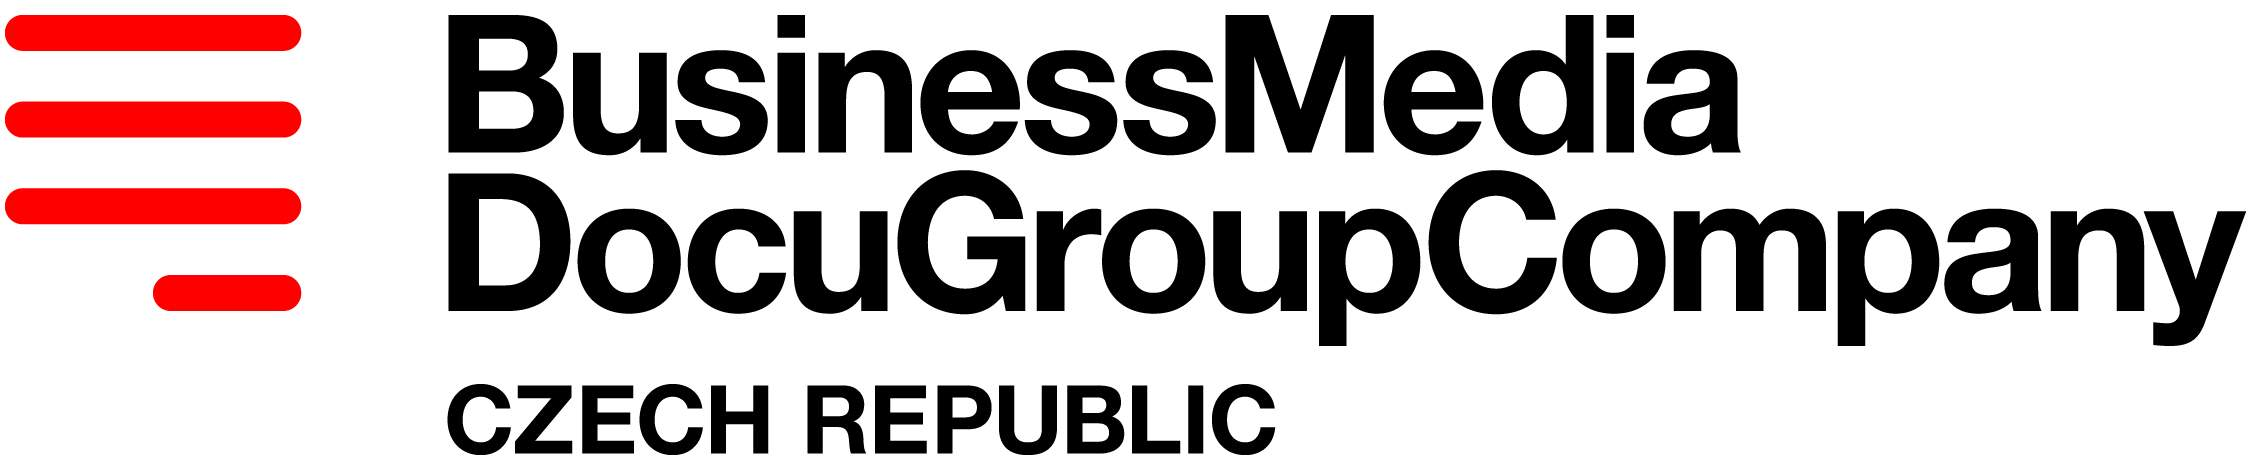 BusinessMedia DocuGroupCompany